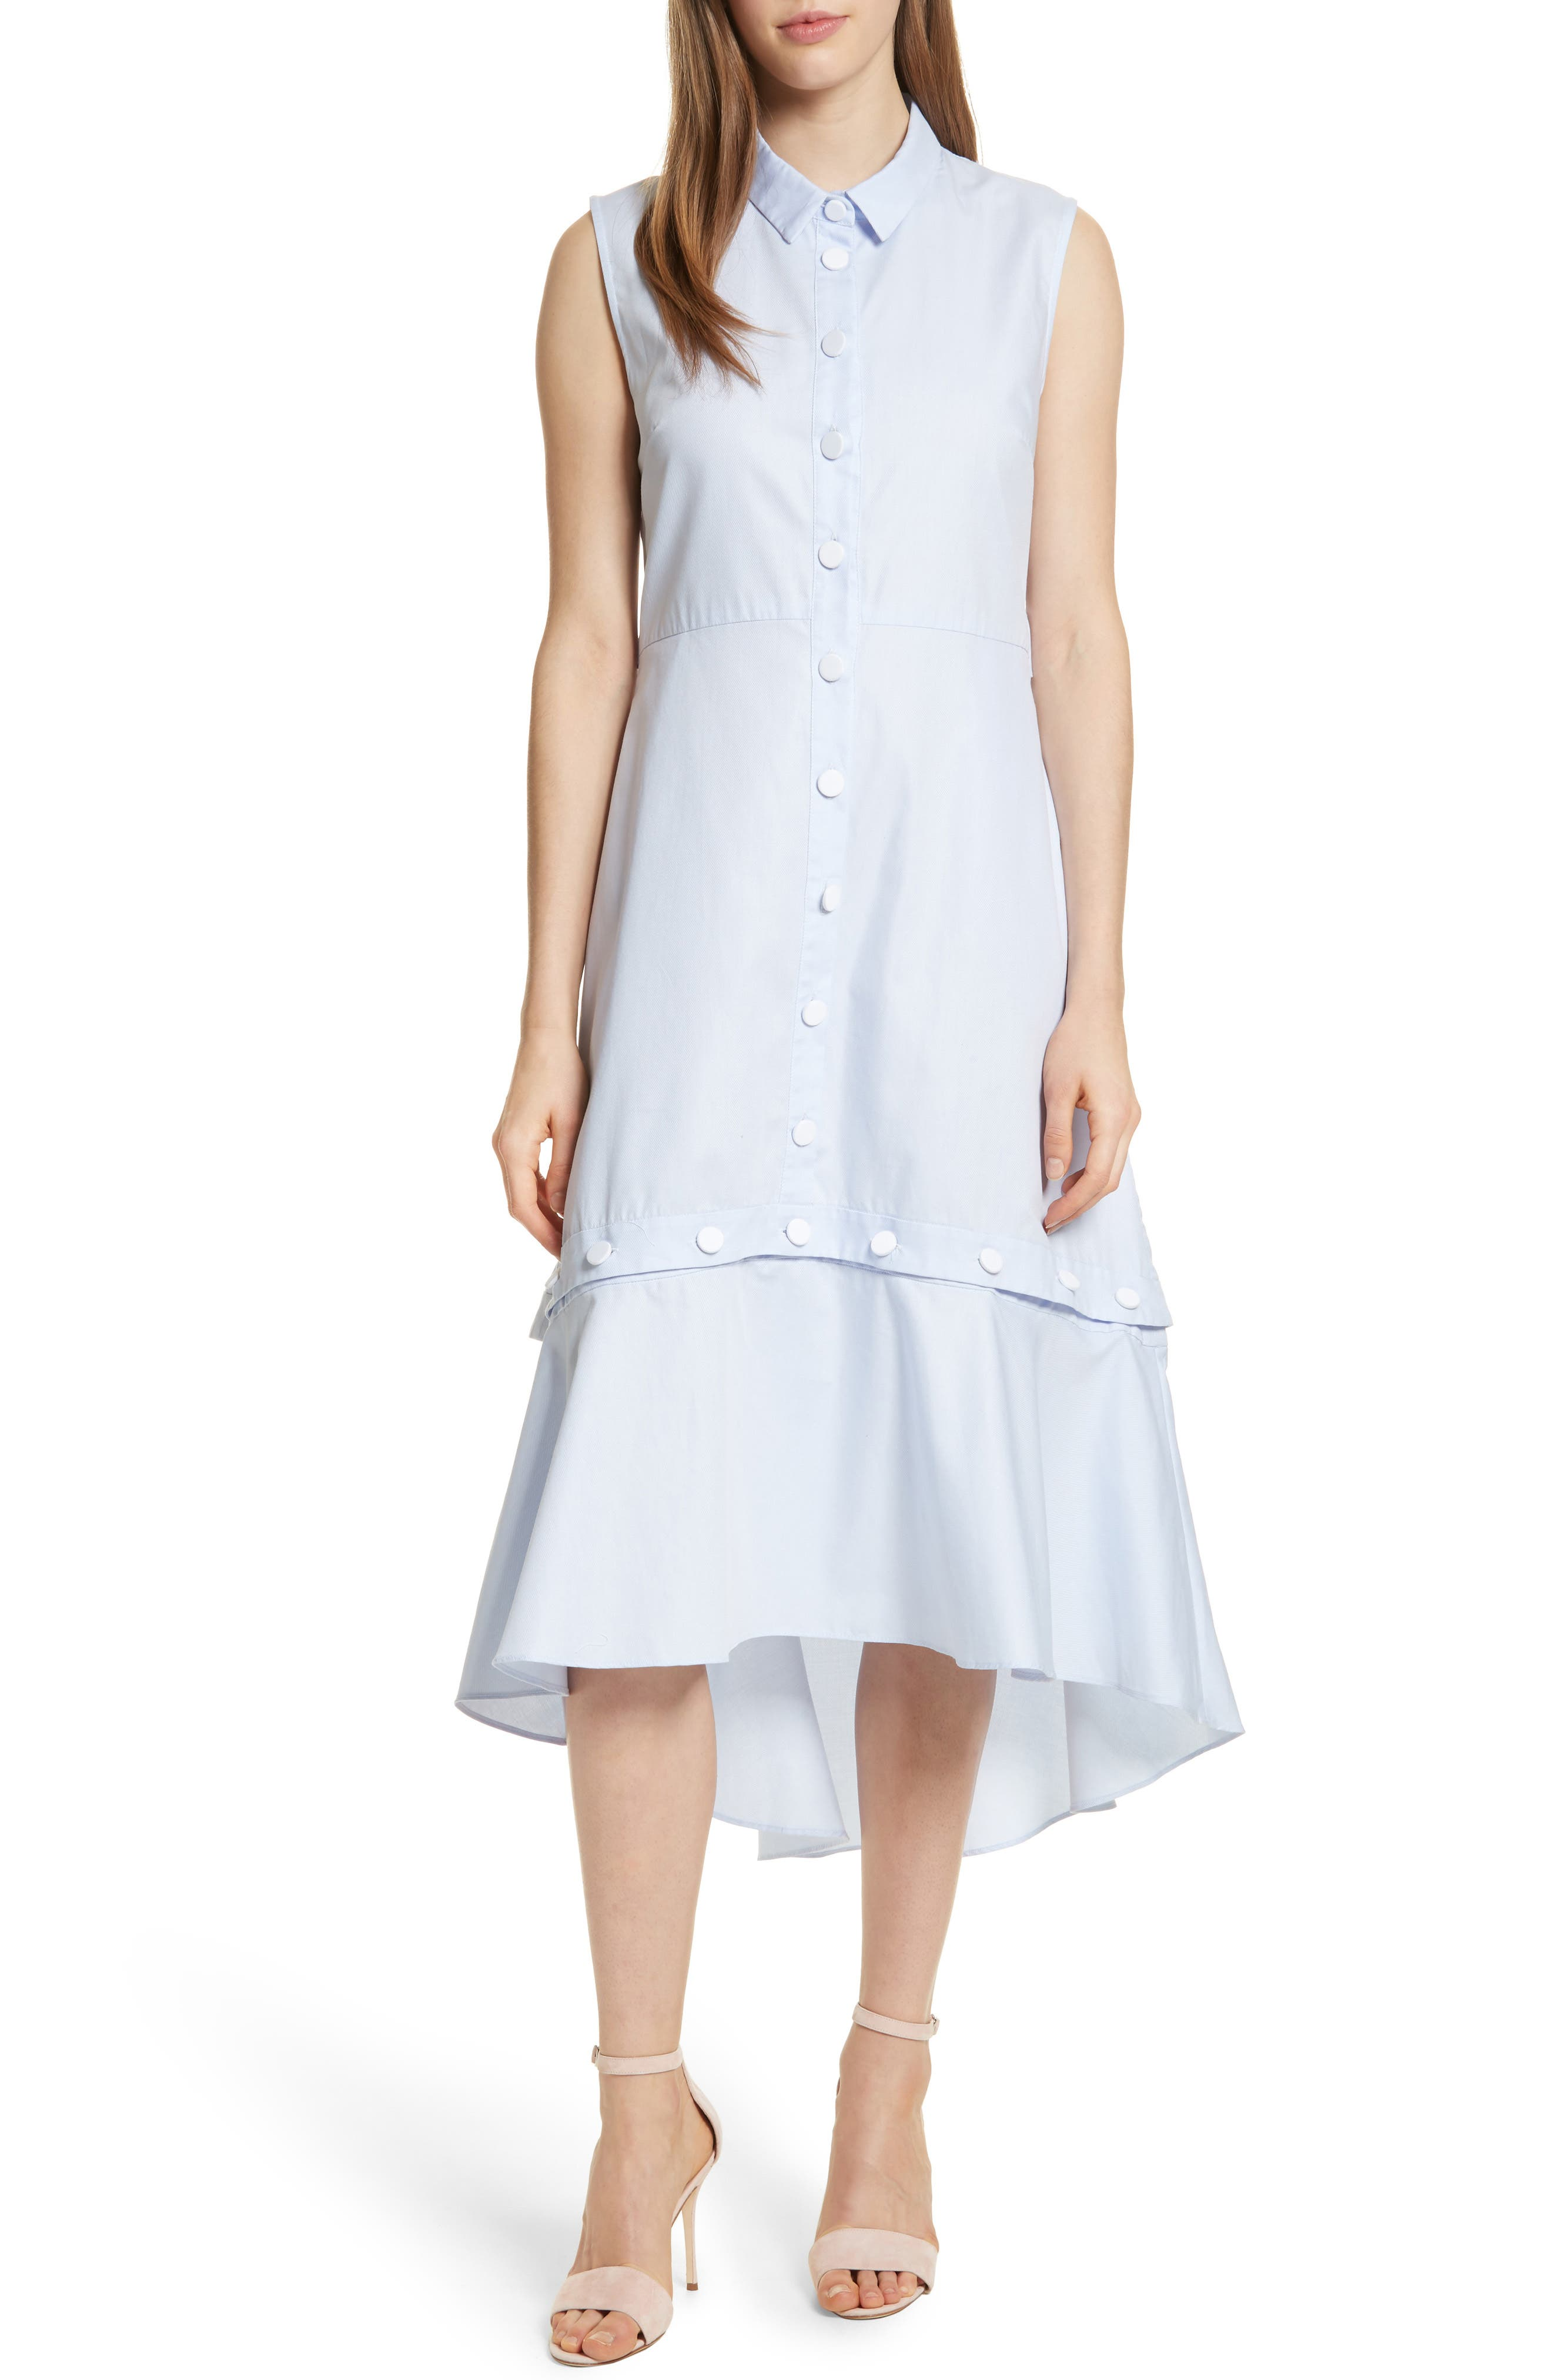 Prose & Poetry Rosen Midi Shirtdress,                             Main thumbnail 1, color,                             420